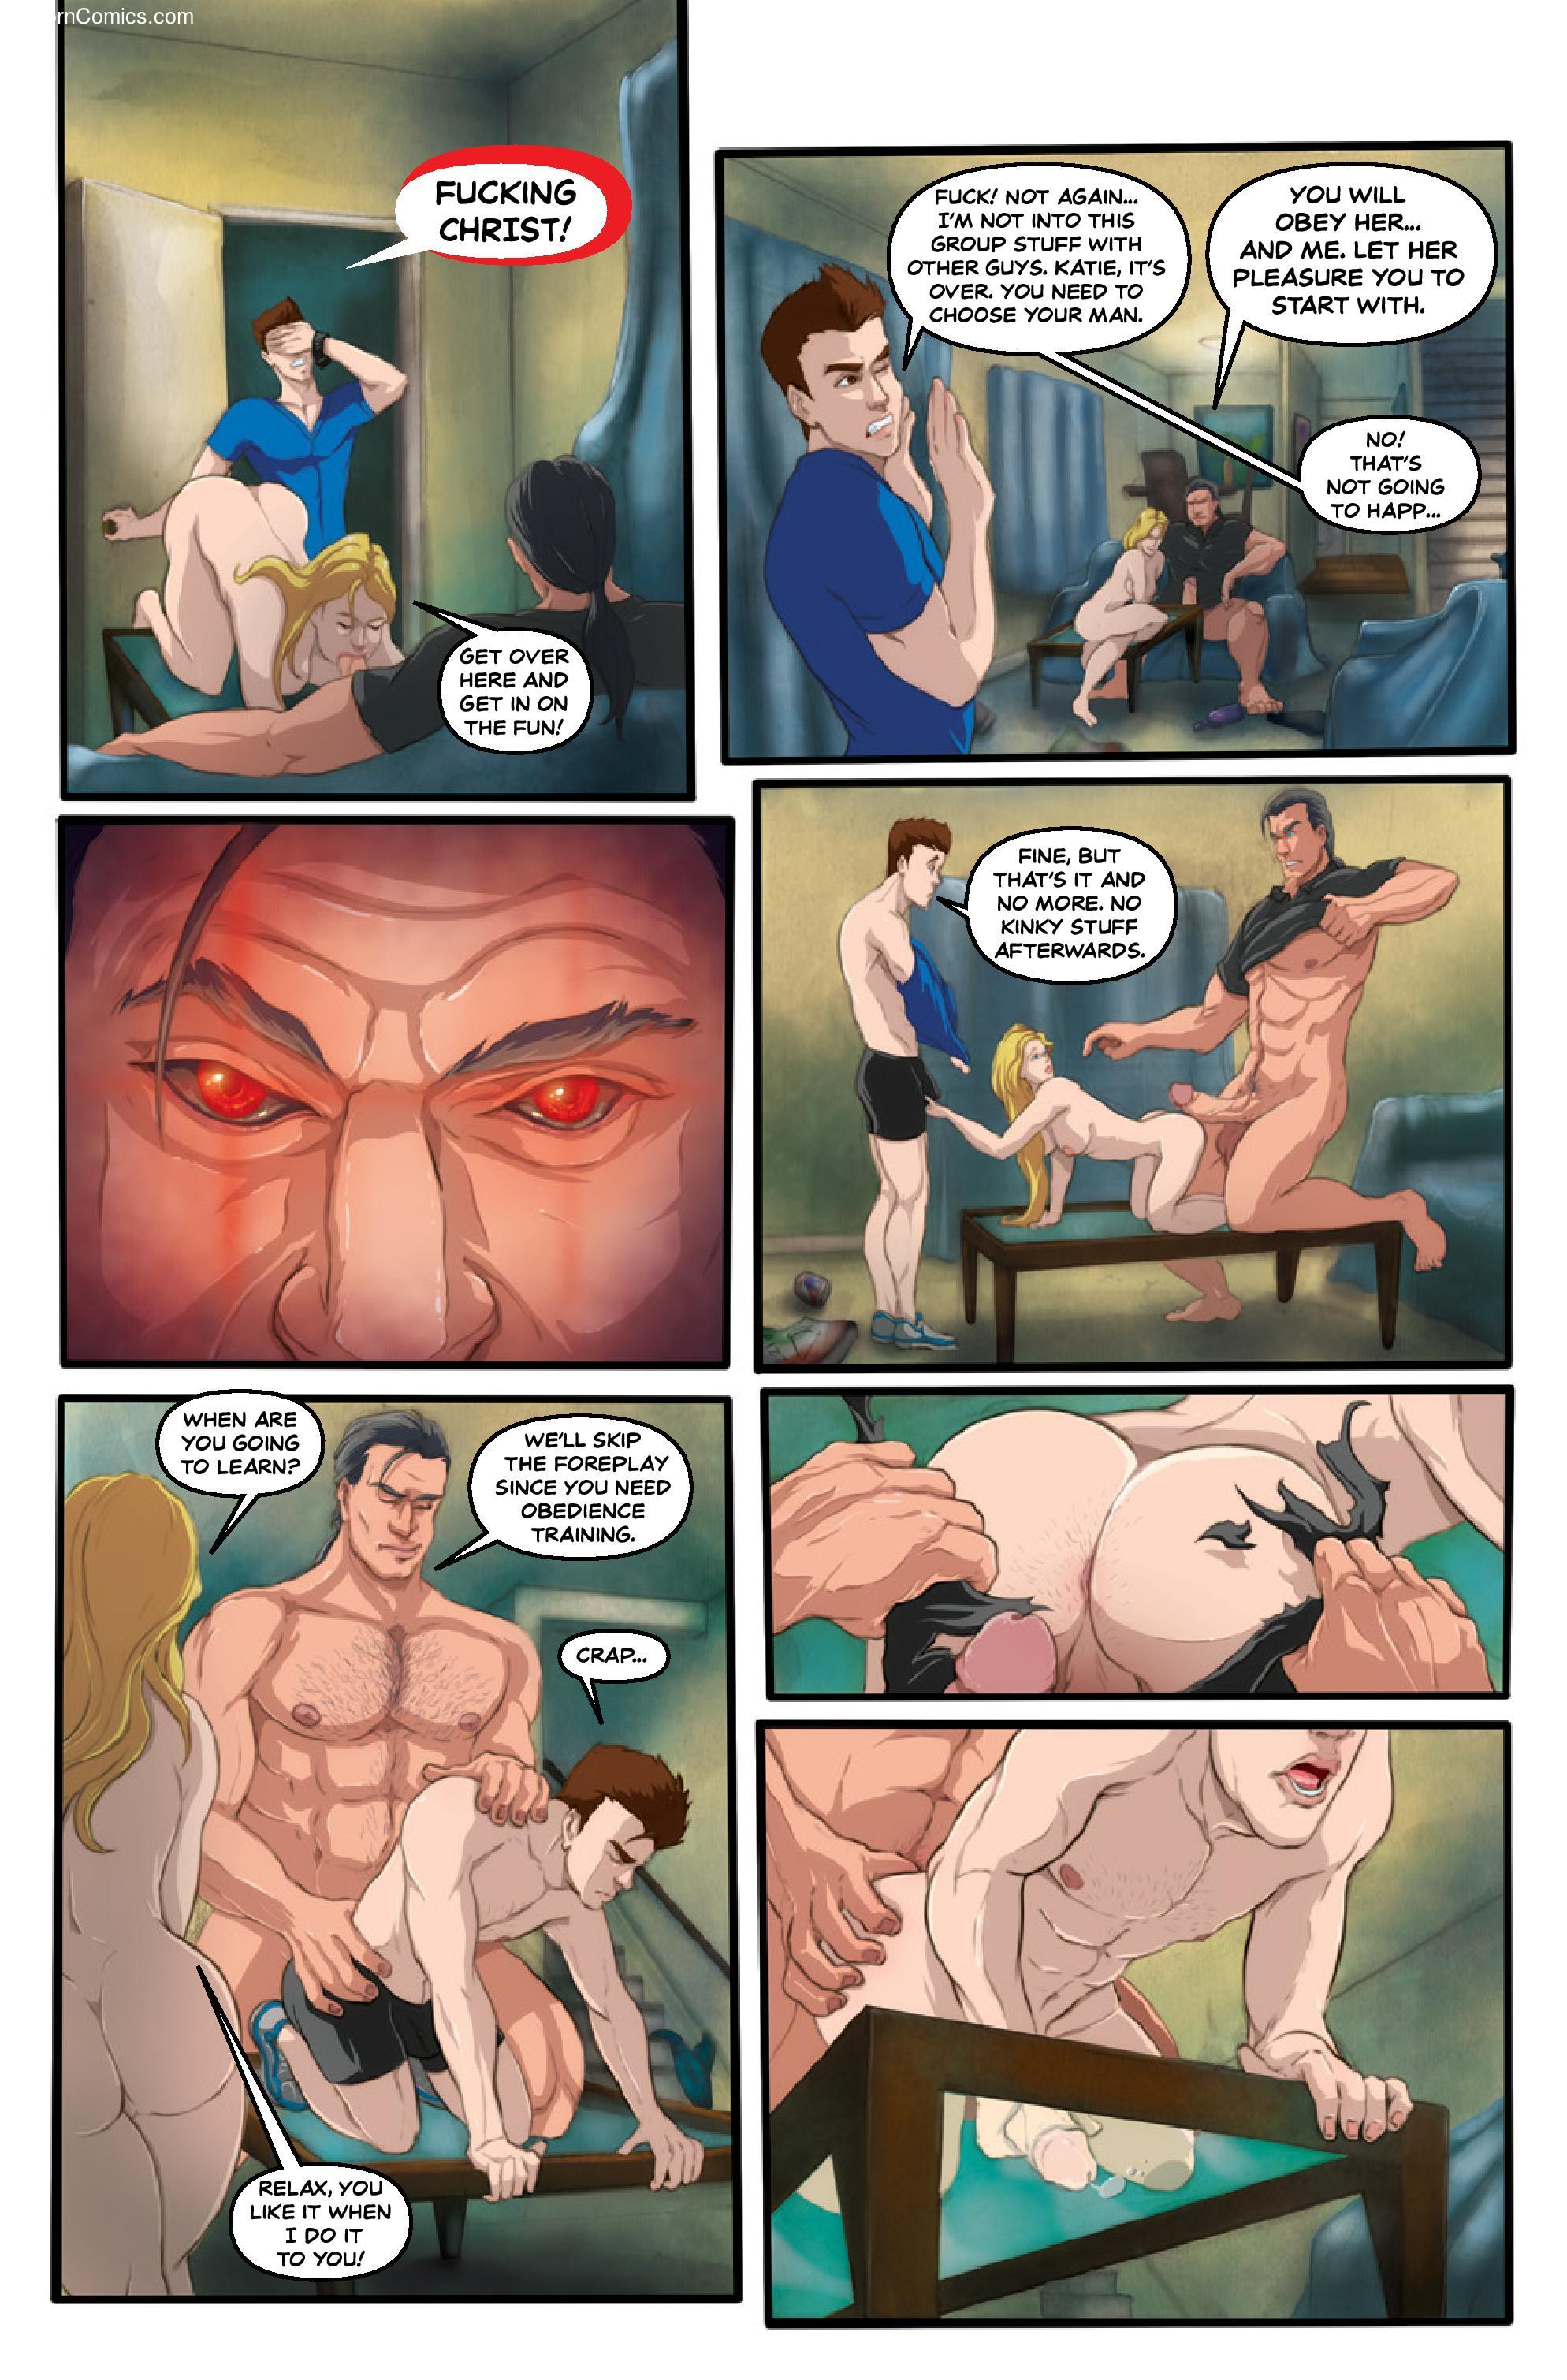 Xxx comics-The pack 116 free sex comic